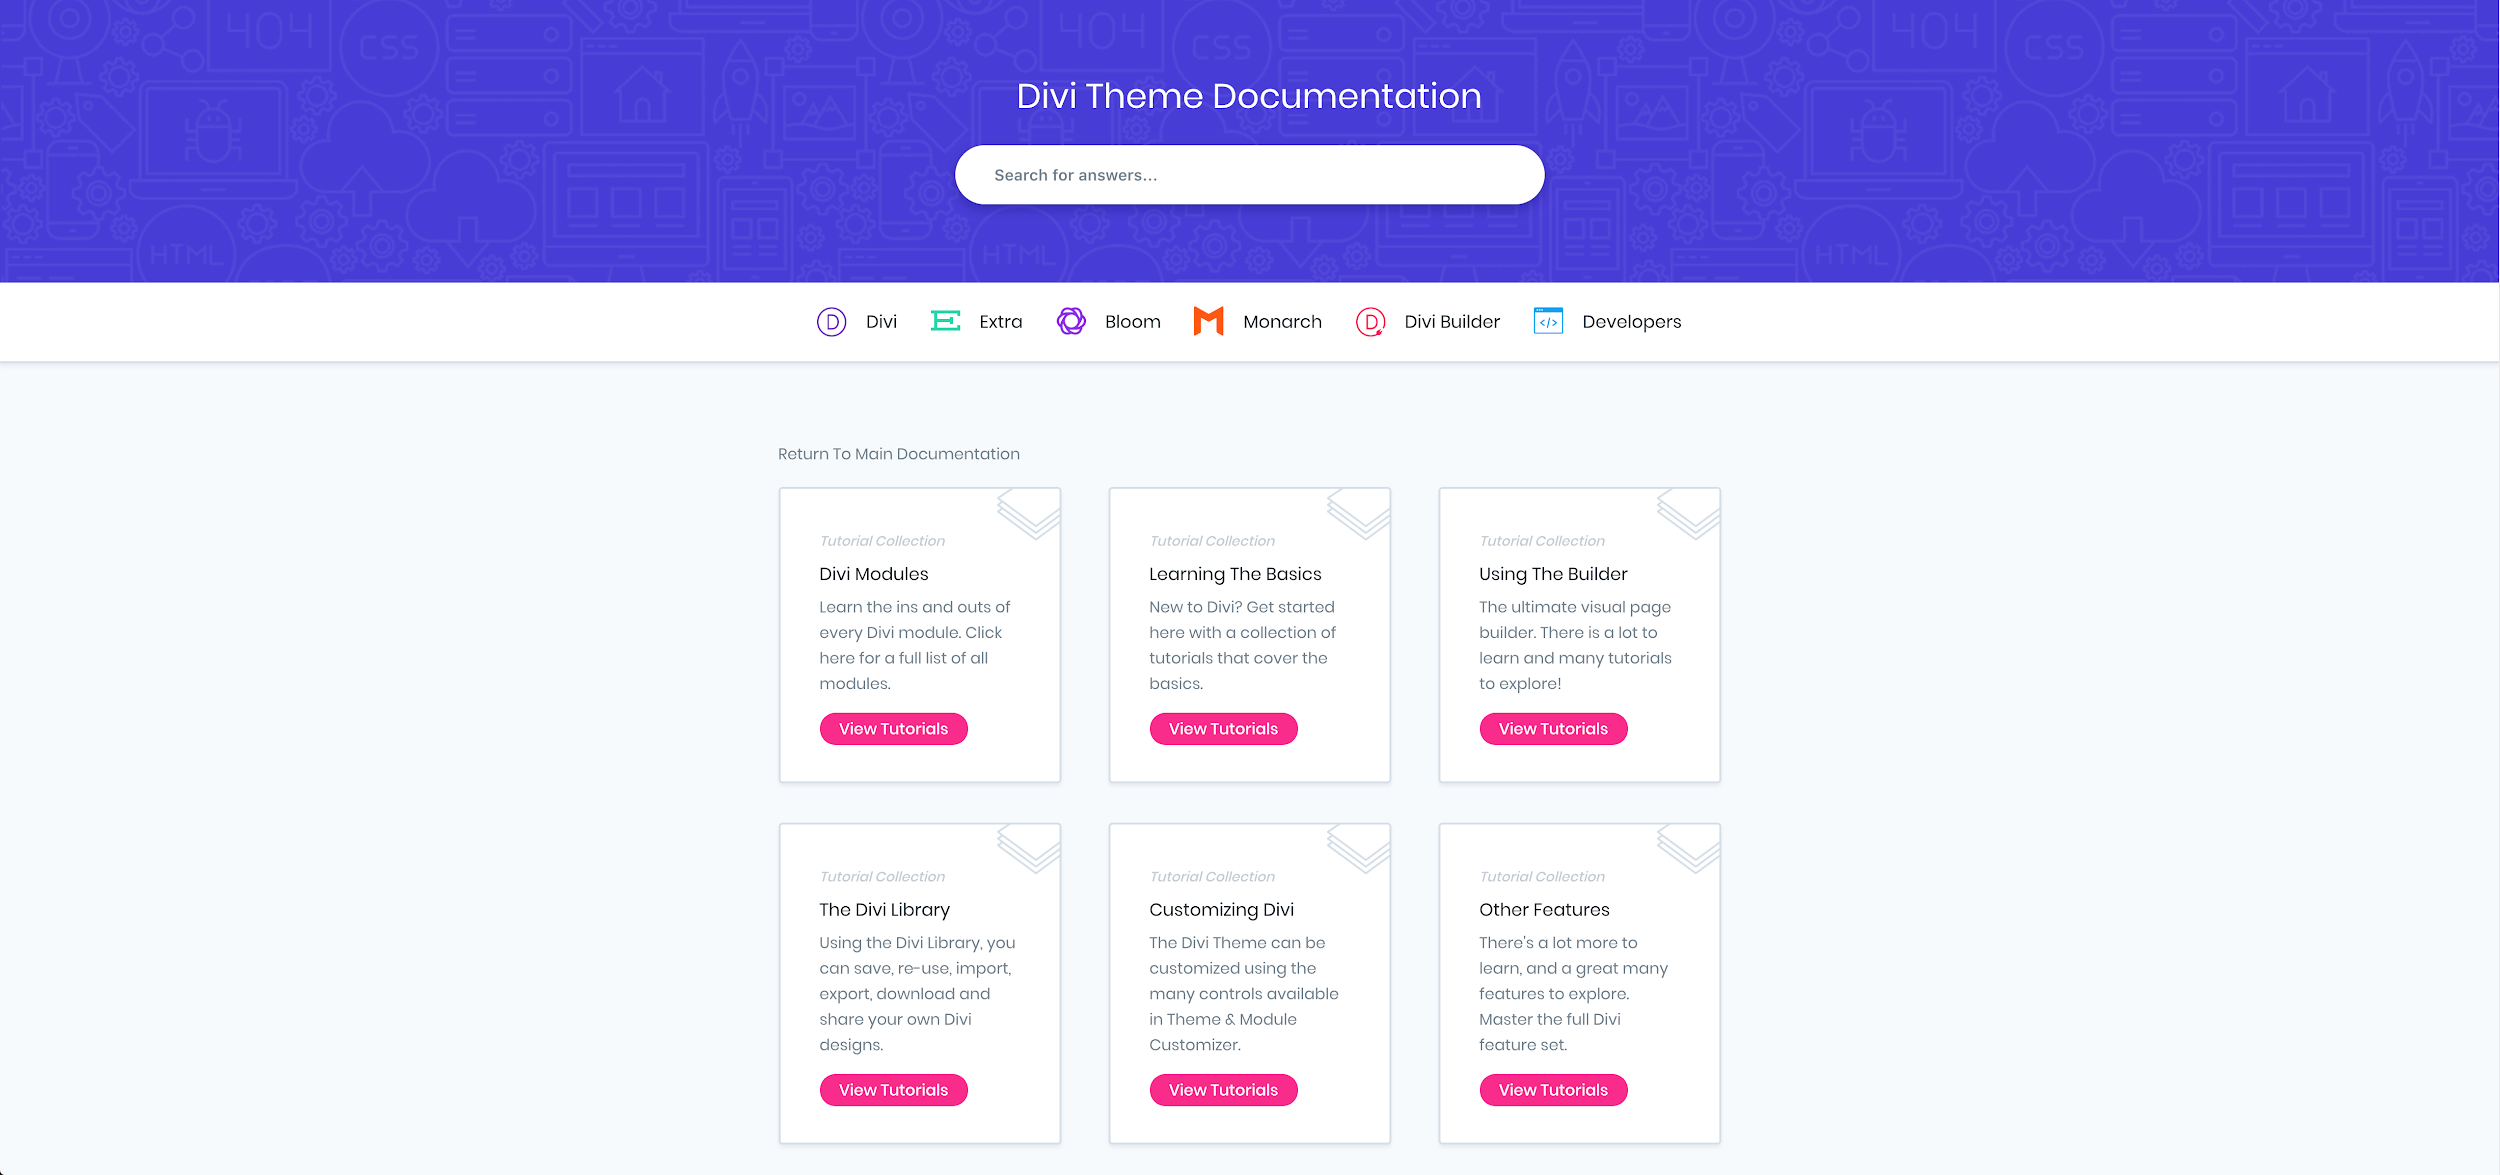 Divi Theme Documentation